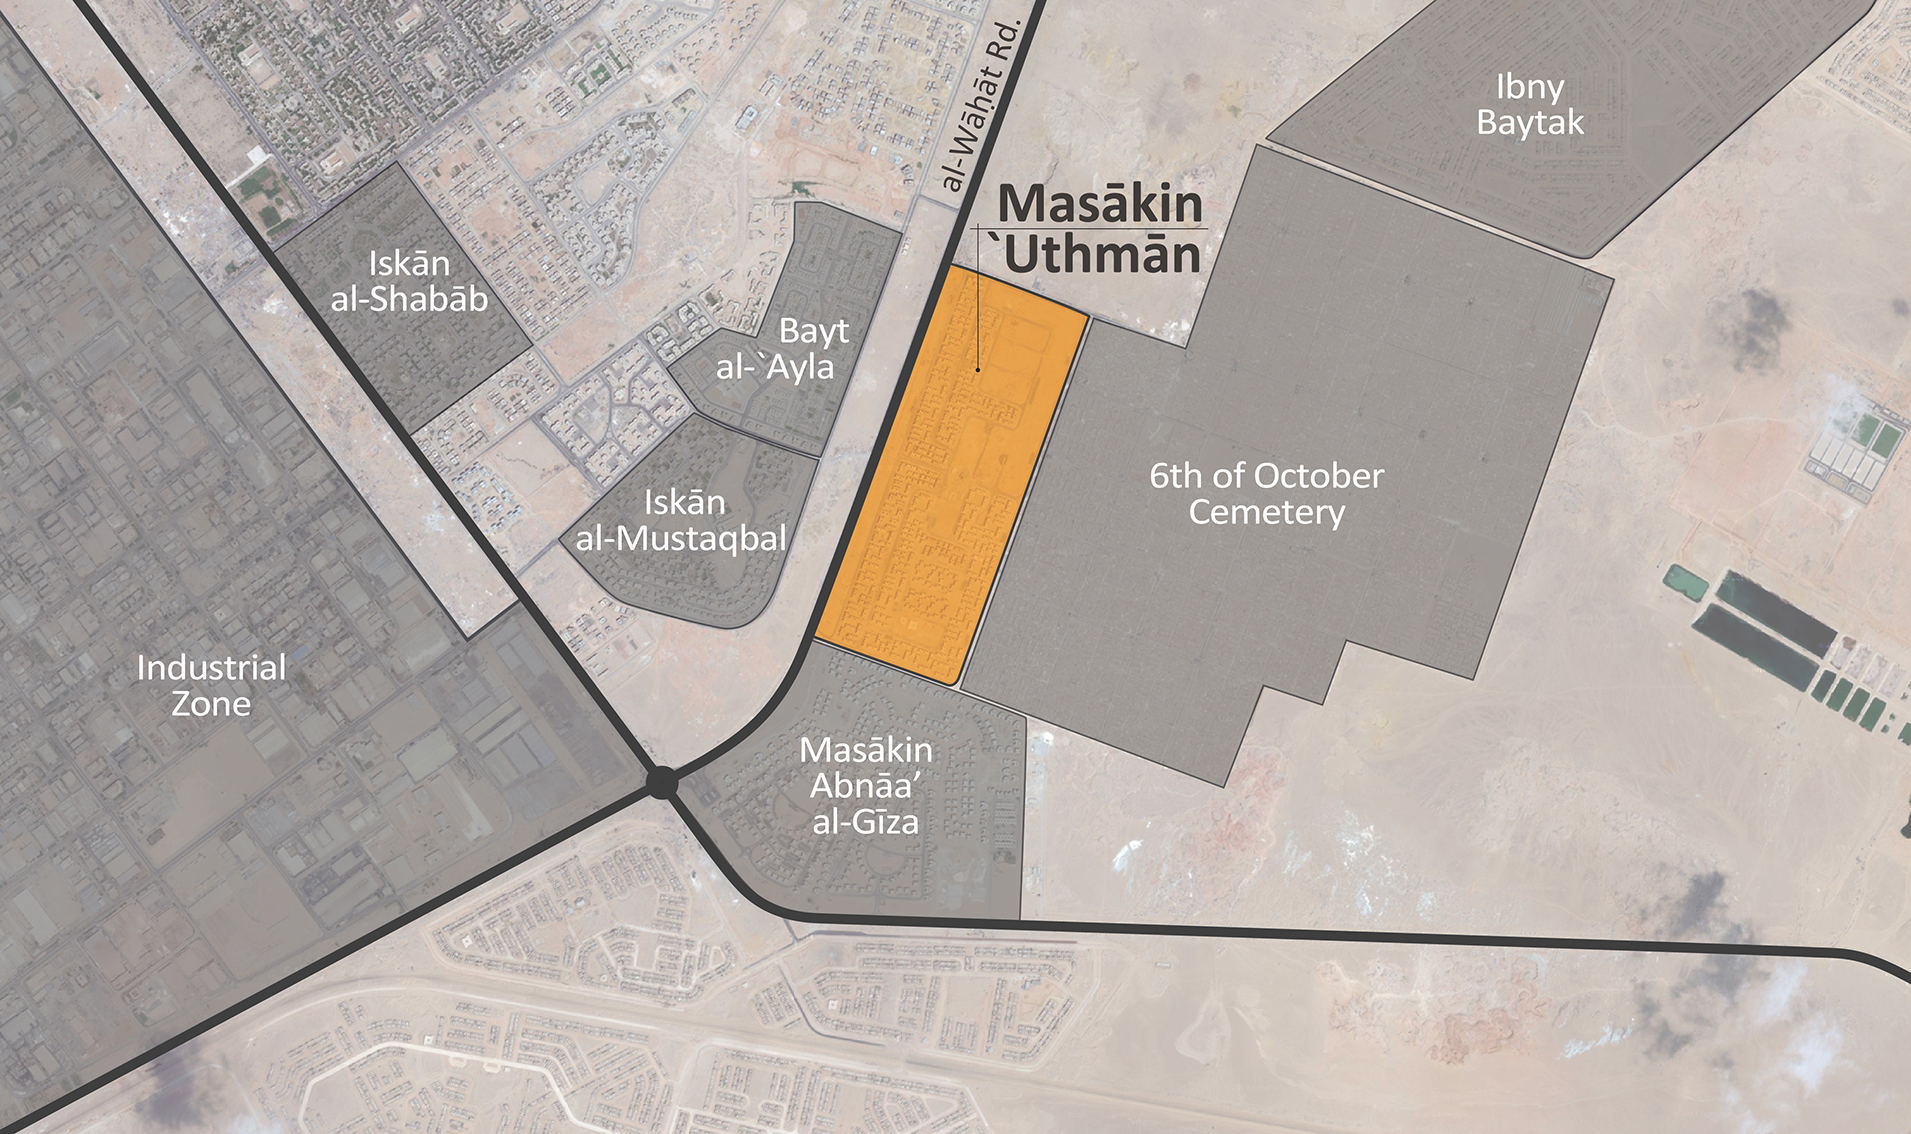 Masākin 'Uthmān is joined in the area by a number of other housing complexes.